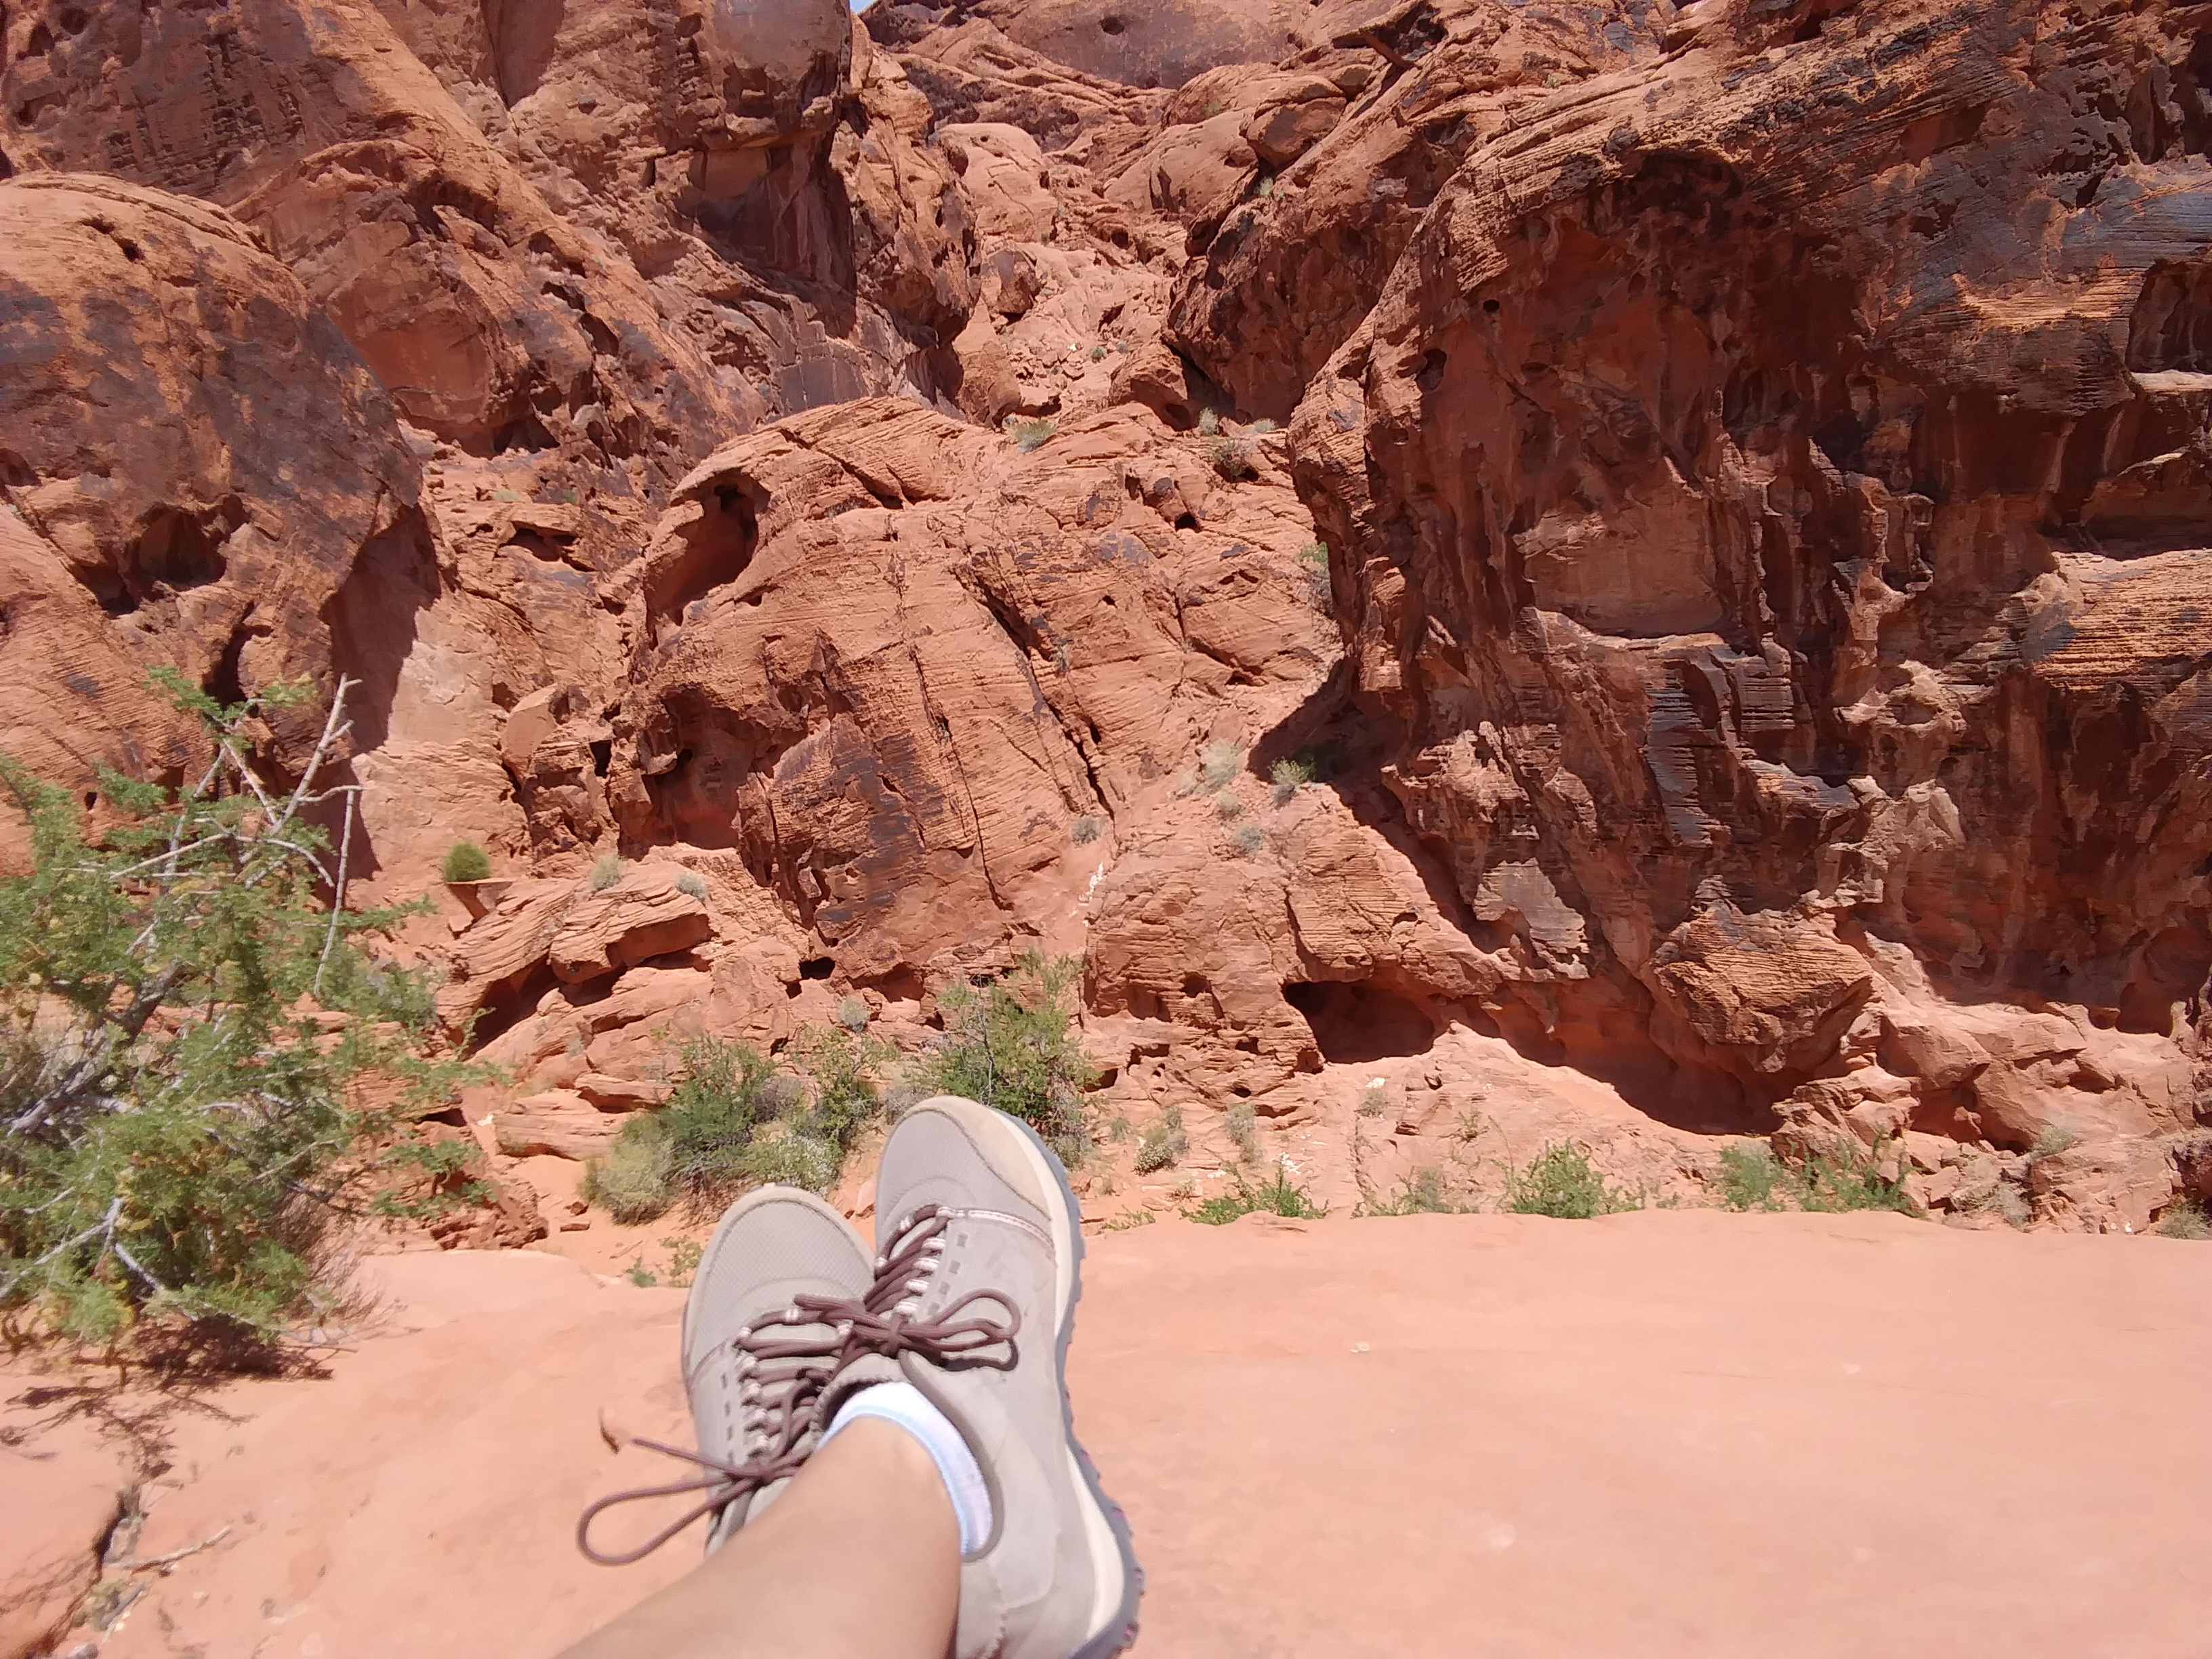 Near Mouses Trap, Valley of Fire, Nevada. FitlifeandTravel.com